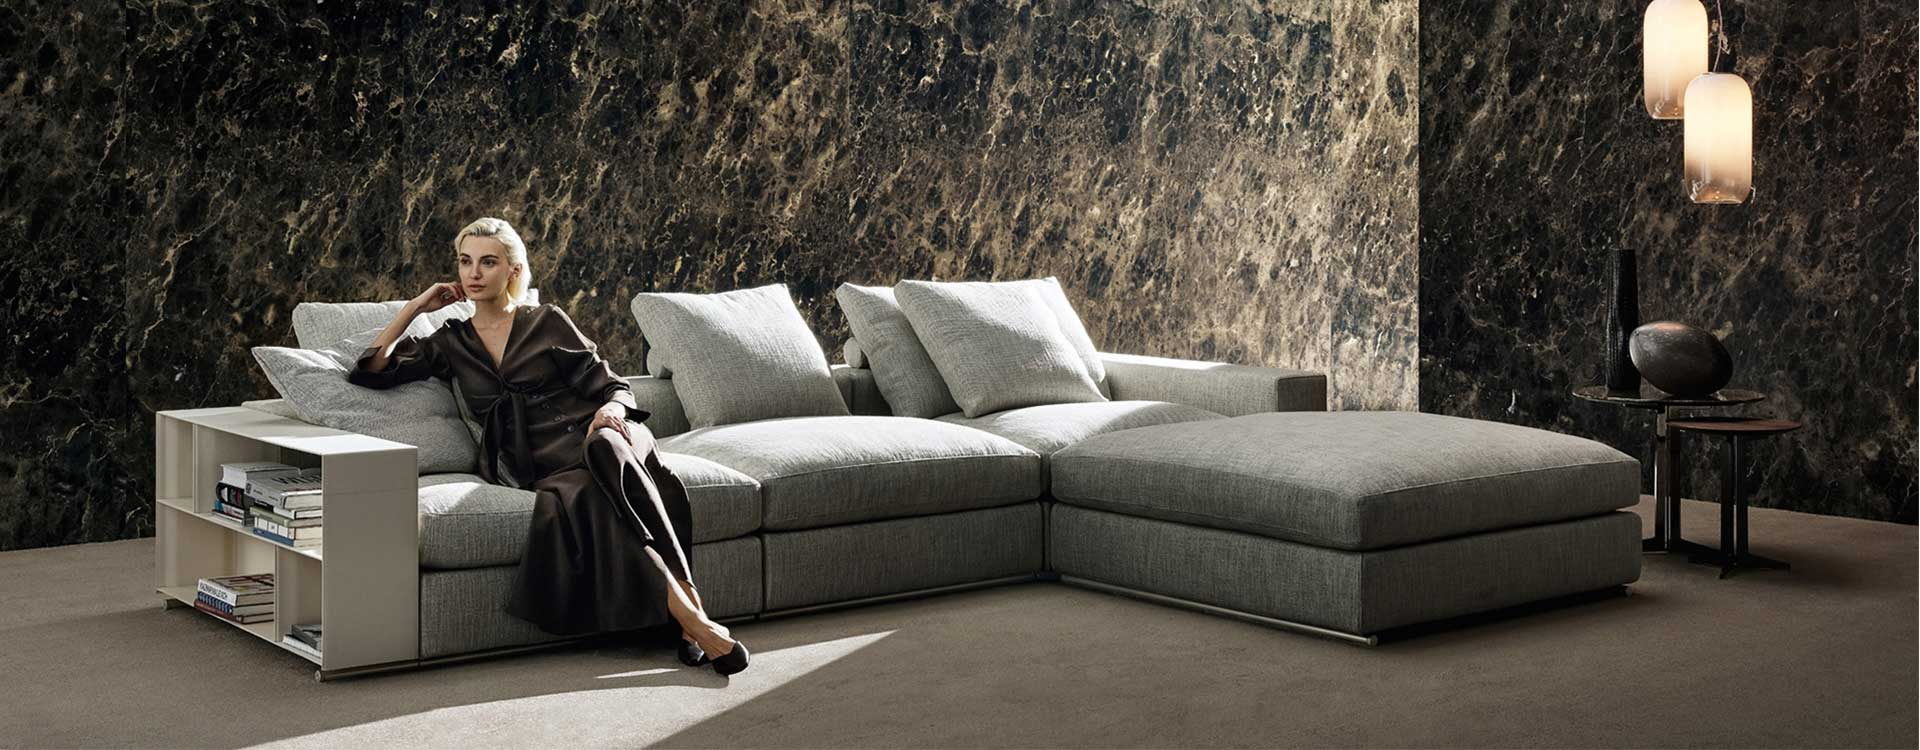 Sectional sofa example in large living room